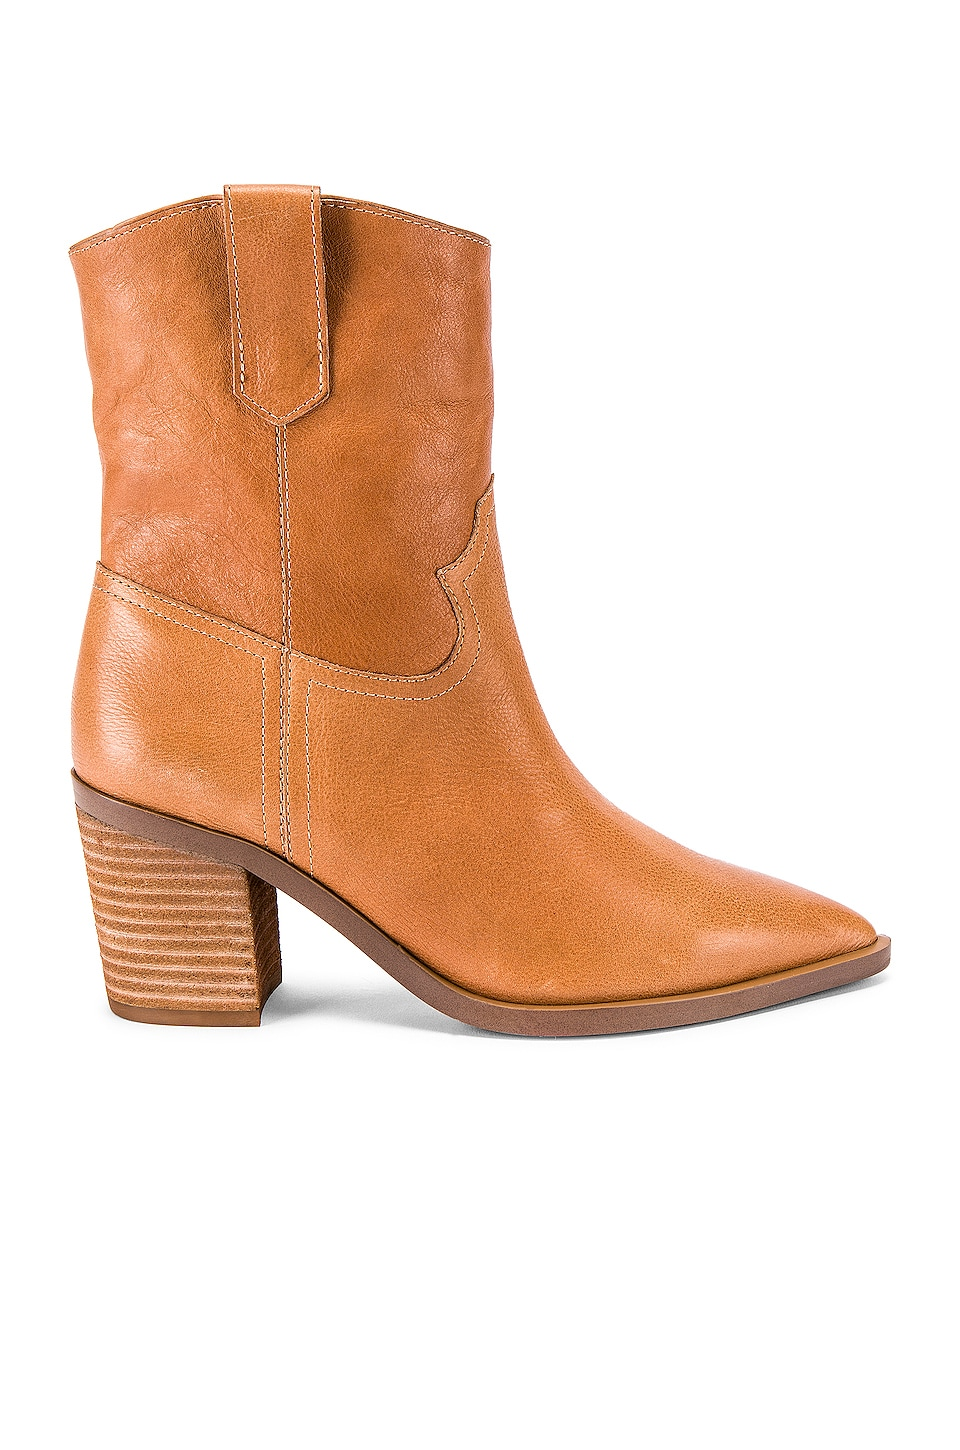 Tony Bianco Scout Boot in Tan Arizona